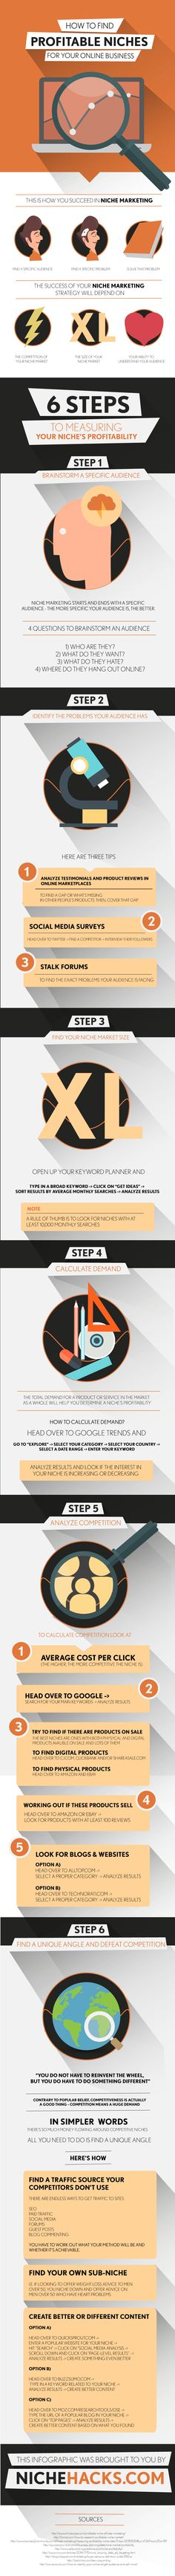 How To Find And Dominate Profitable Niches in 6 Easy Steps [Infographic]